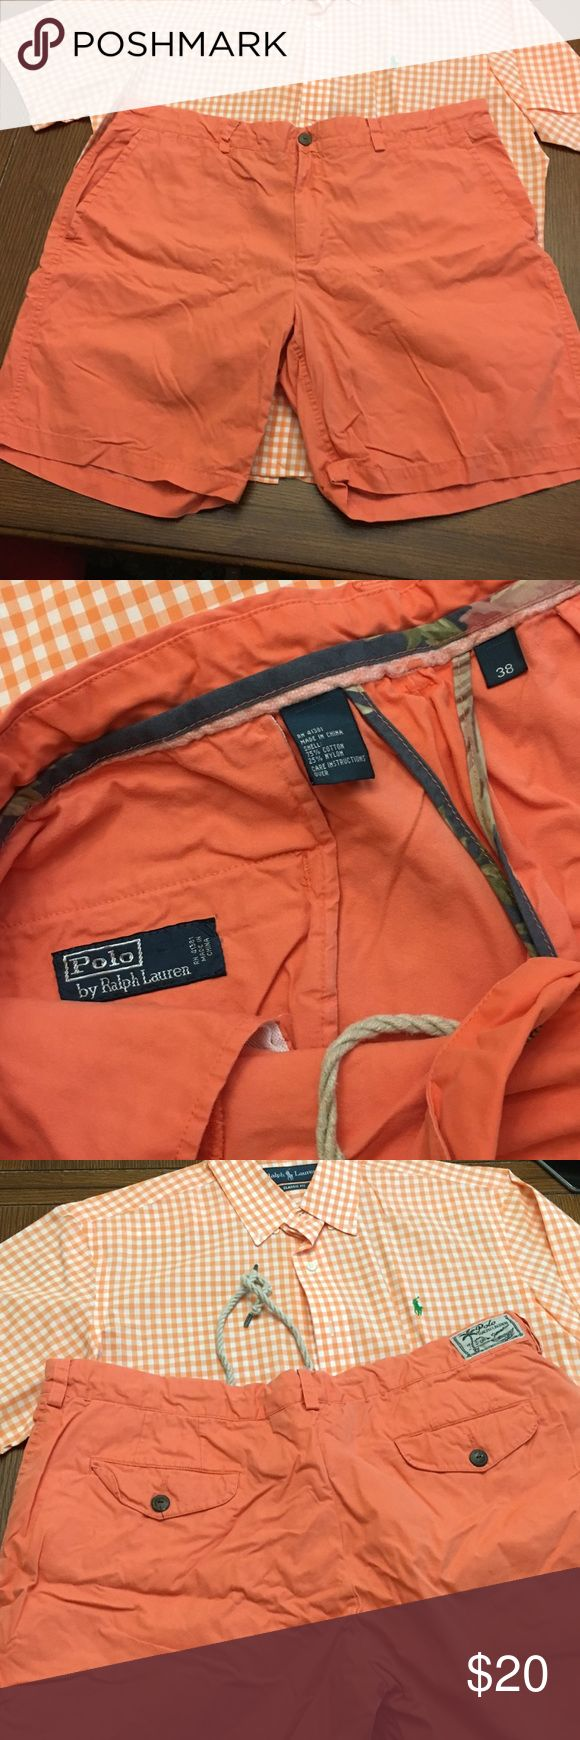 $🔽 Polo by Ralph Laurn Summer - orange 🔽PRICE DROP🔽 Polo by Ralph Laurn Summer - orange with drawstring waist. Worn once. 🎉💵BUNDLE AND SAVE 15%💵🎉 Polo by Ralph Lauren Shorts Flat Front